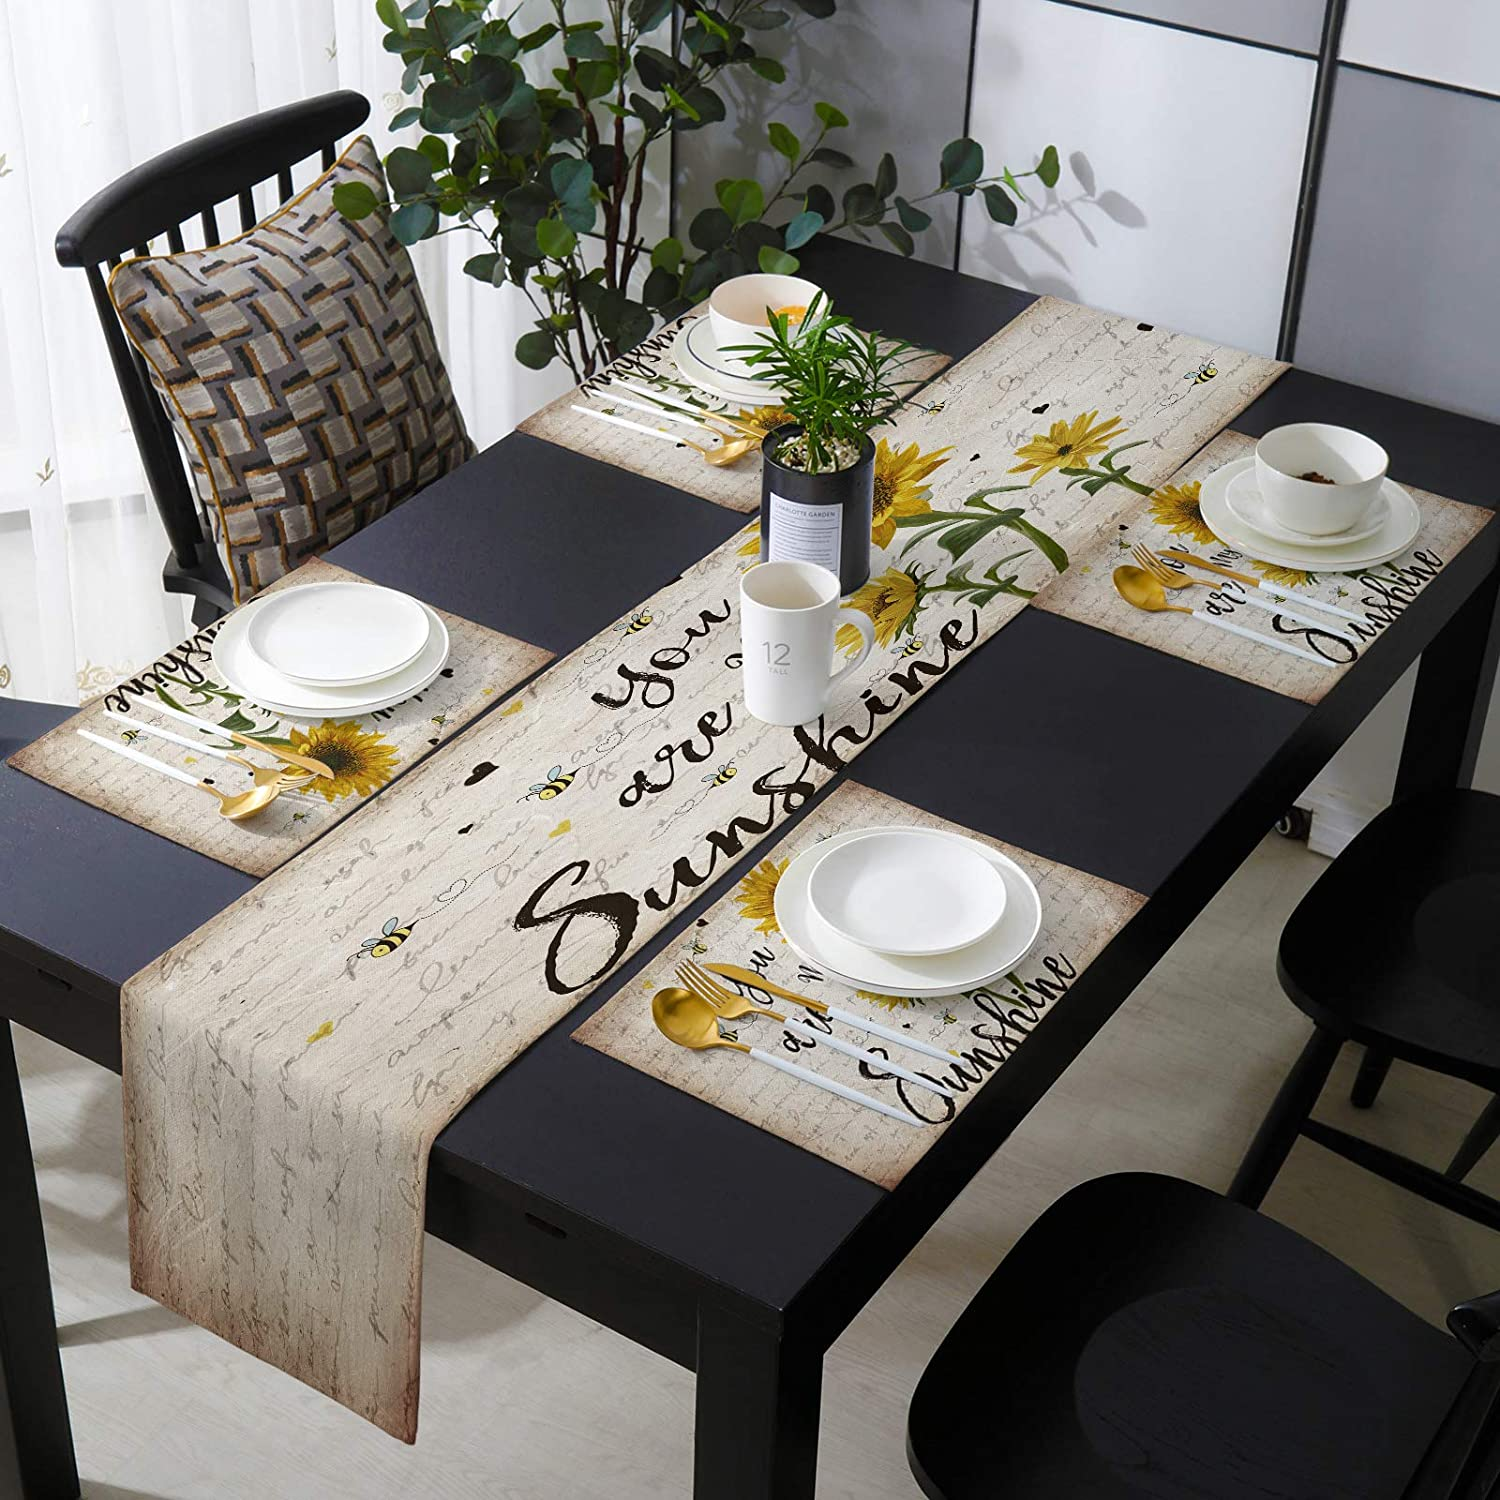 KAROLA Table Max 76% OFF Runner and Placemats Excellence Set You My are of Sunflowers 6